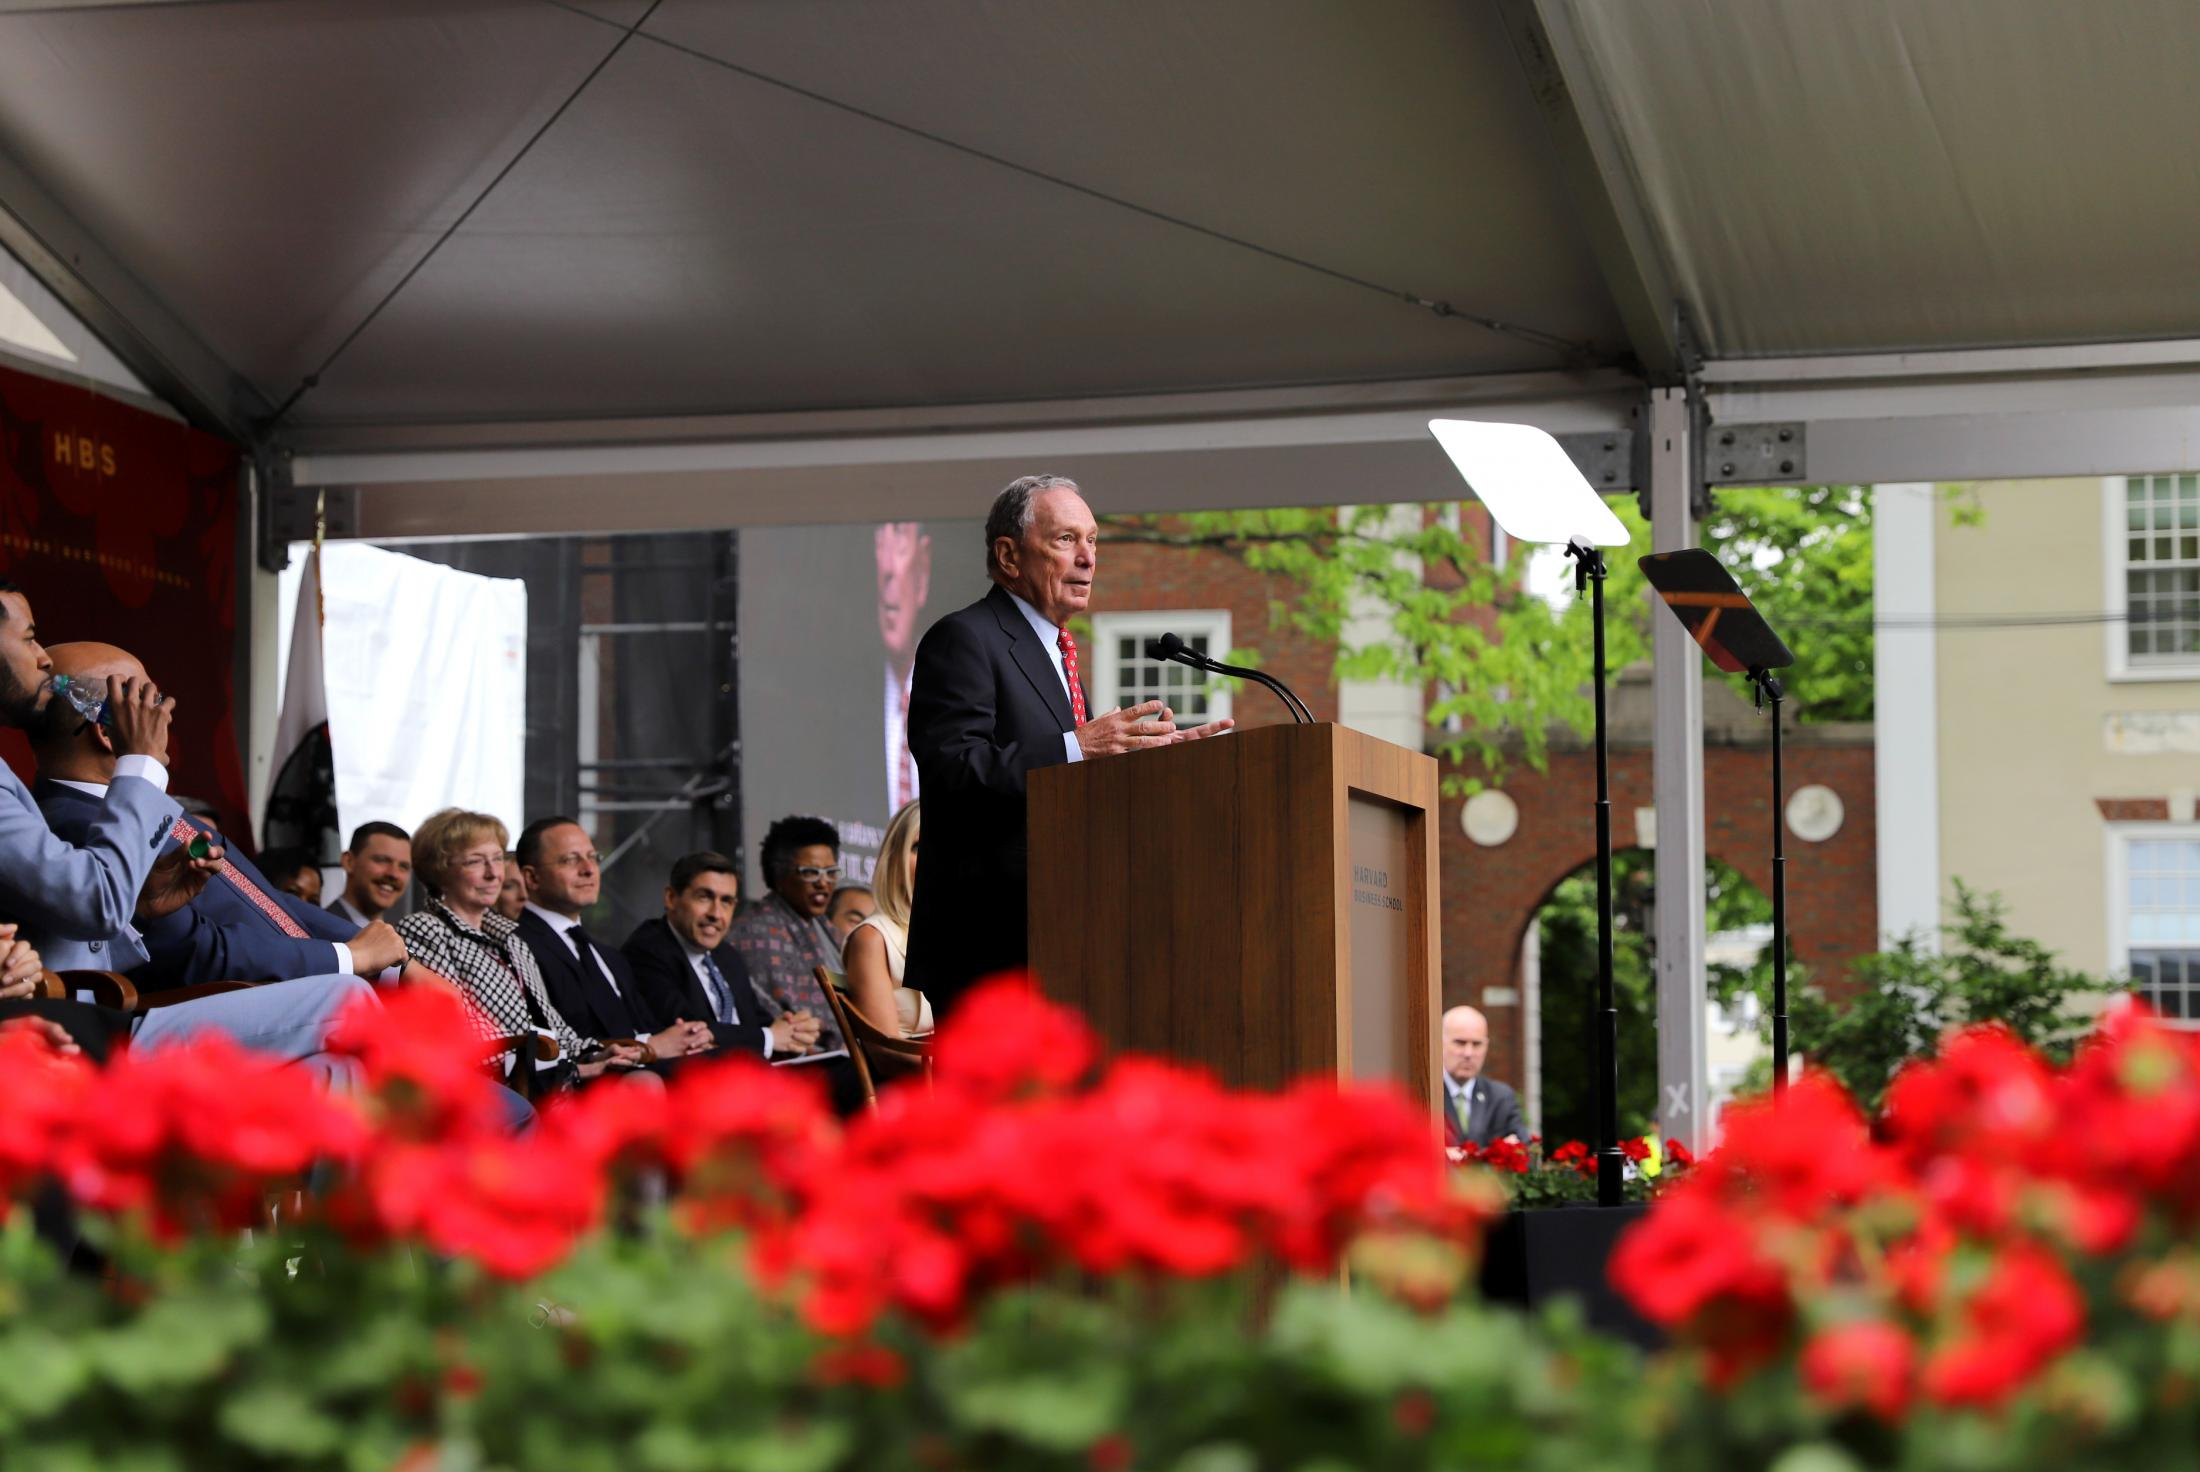 Michael R. Bloomberg, former mayor of New York City and founder of Bloomberg L.P. and Bloomberg Philanthropies, reminisced and gave graduates advice at the Harvard Business School's Class Day in May 2019.